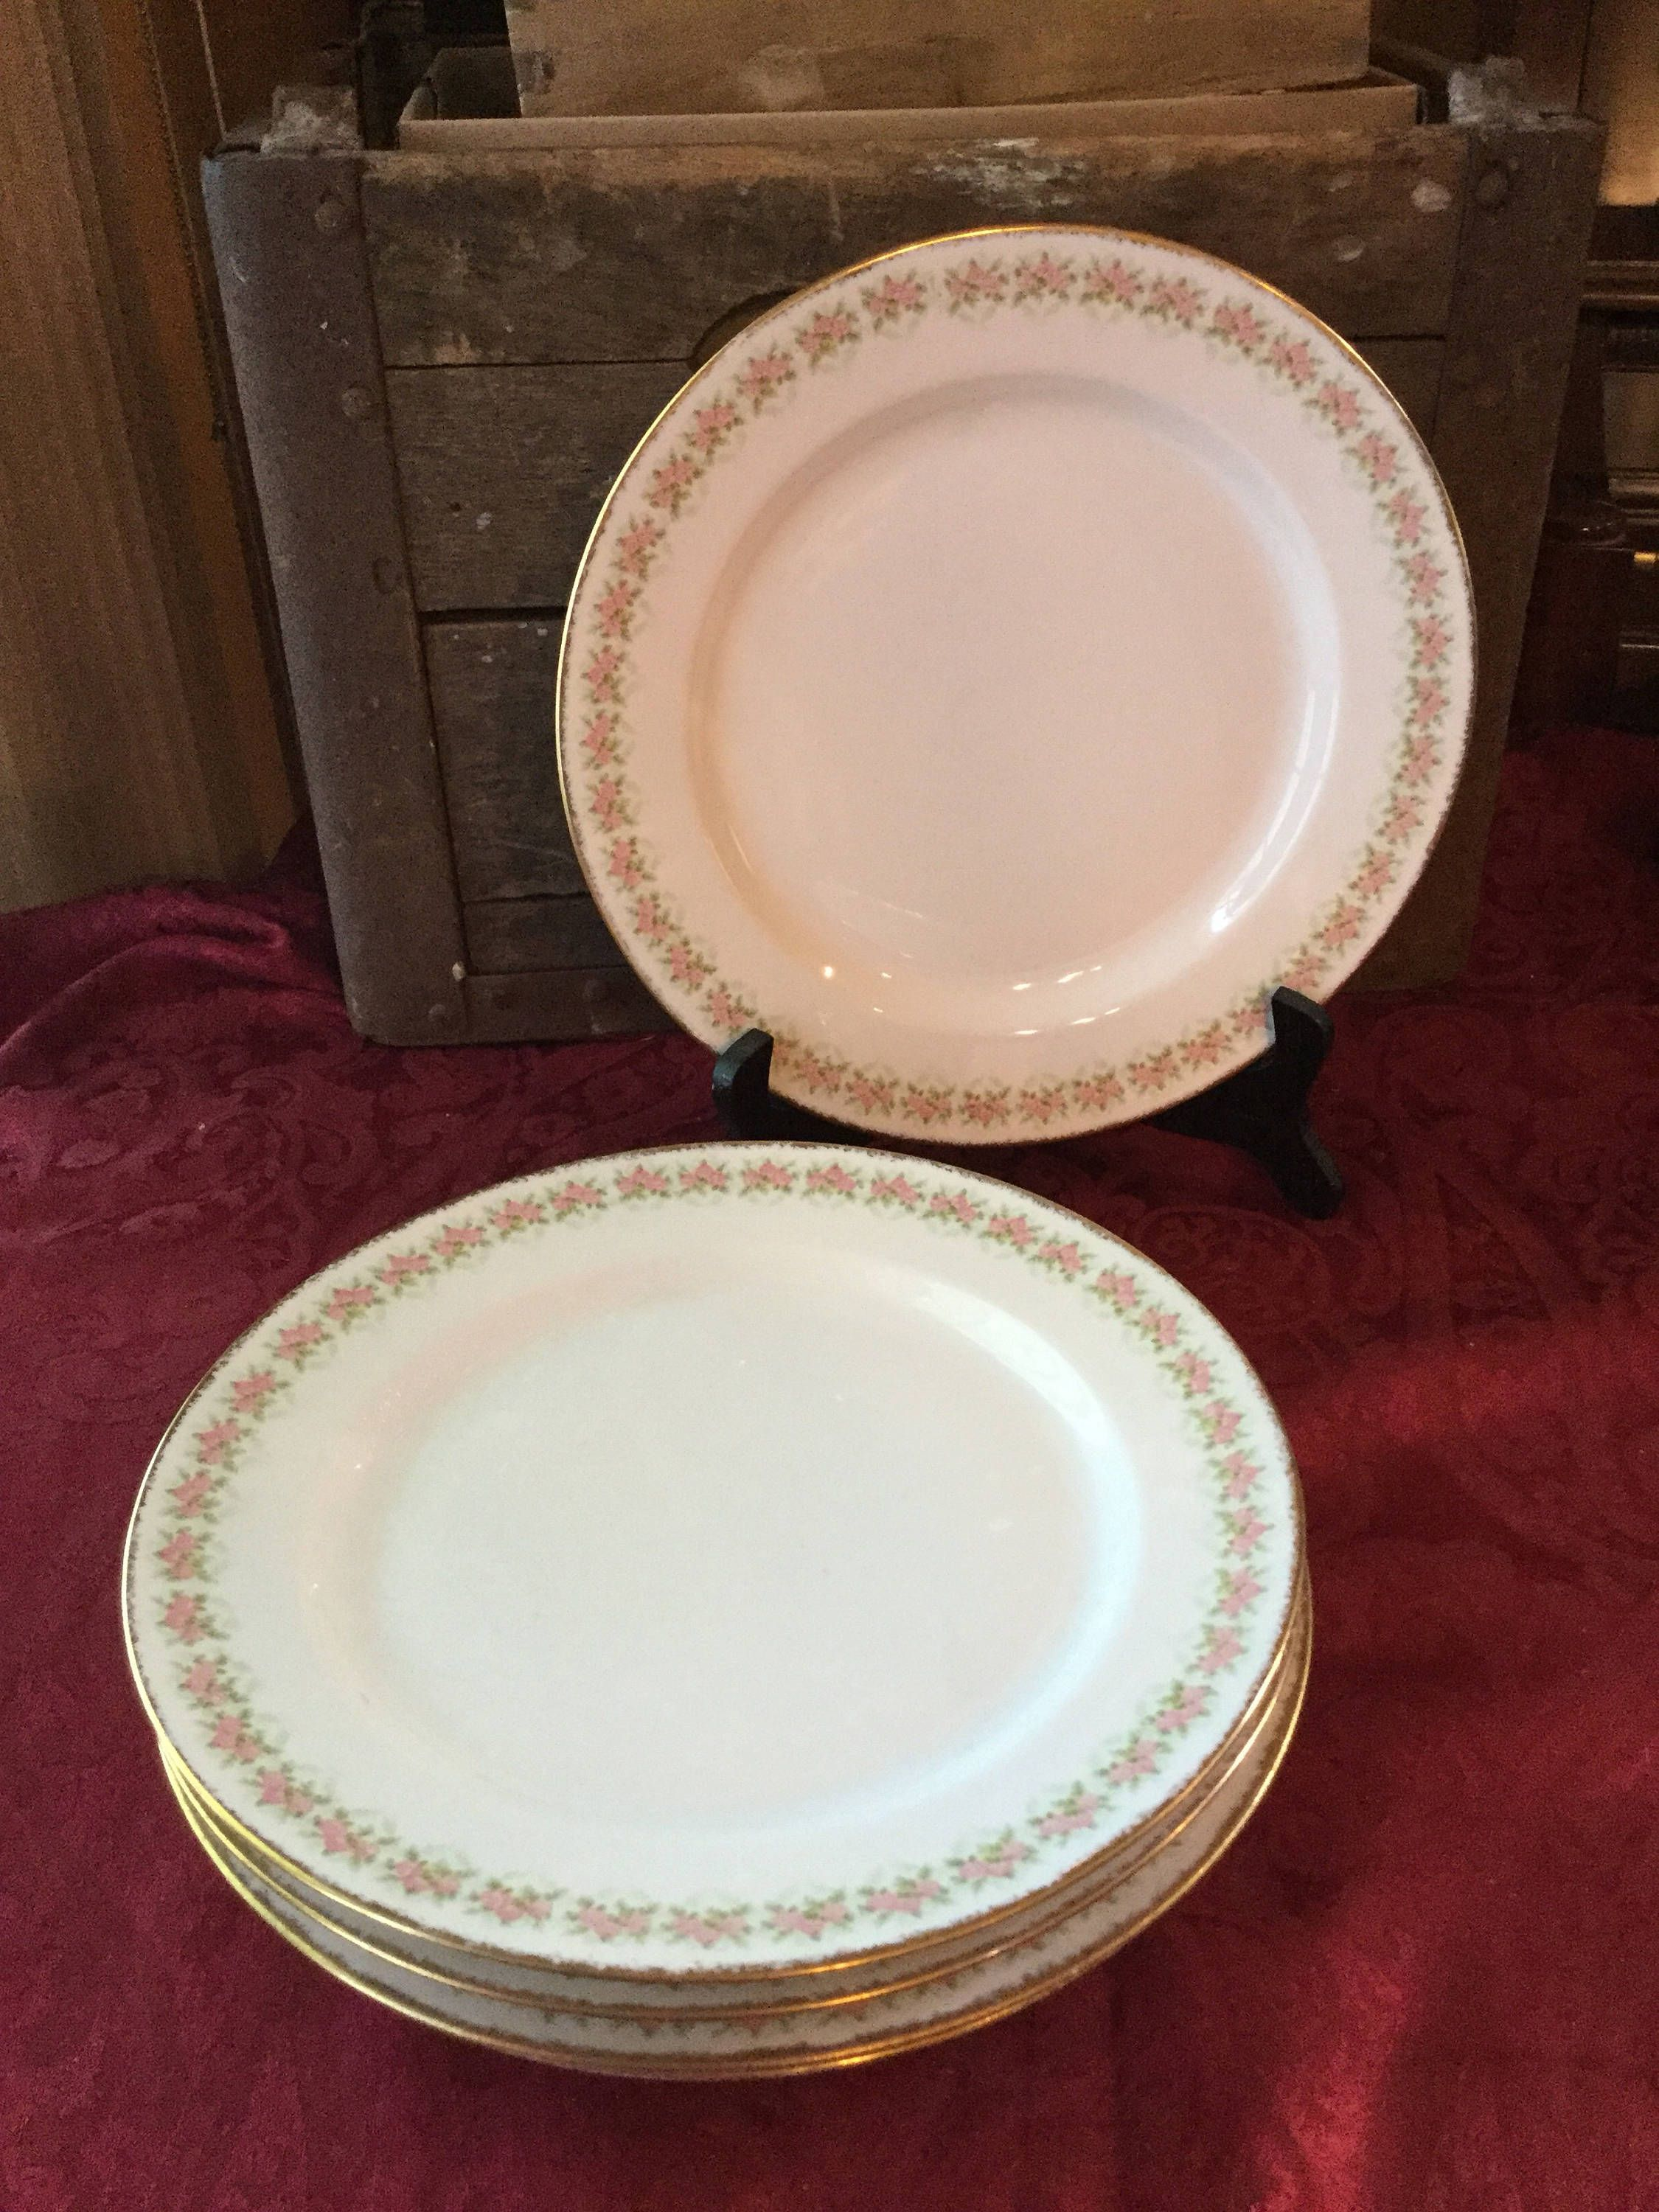 J Pouyat Limoges France Set of 5 Gilded Edge Dinner Plates made for Wanamkers Department Stores & J Pouyat Limoges France Set of 5 Gilded Edge Dinner Plates made ...